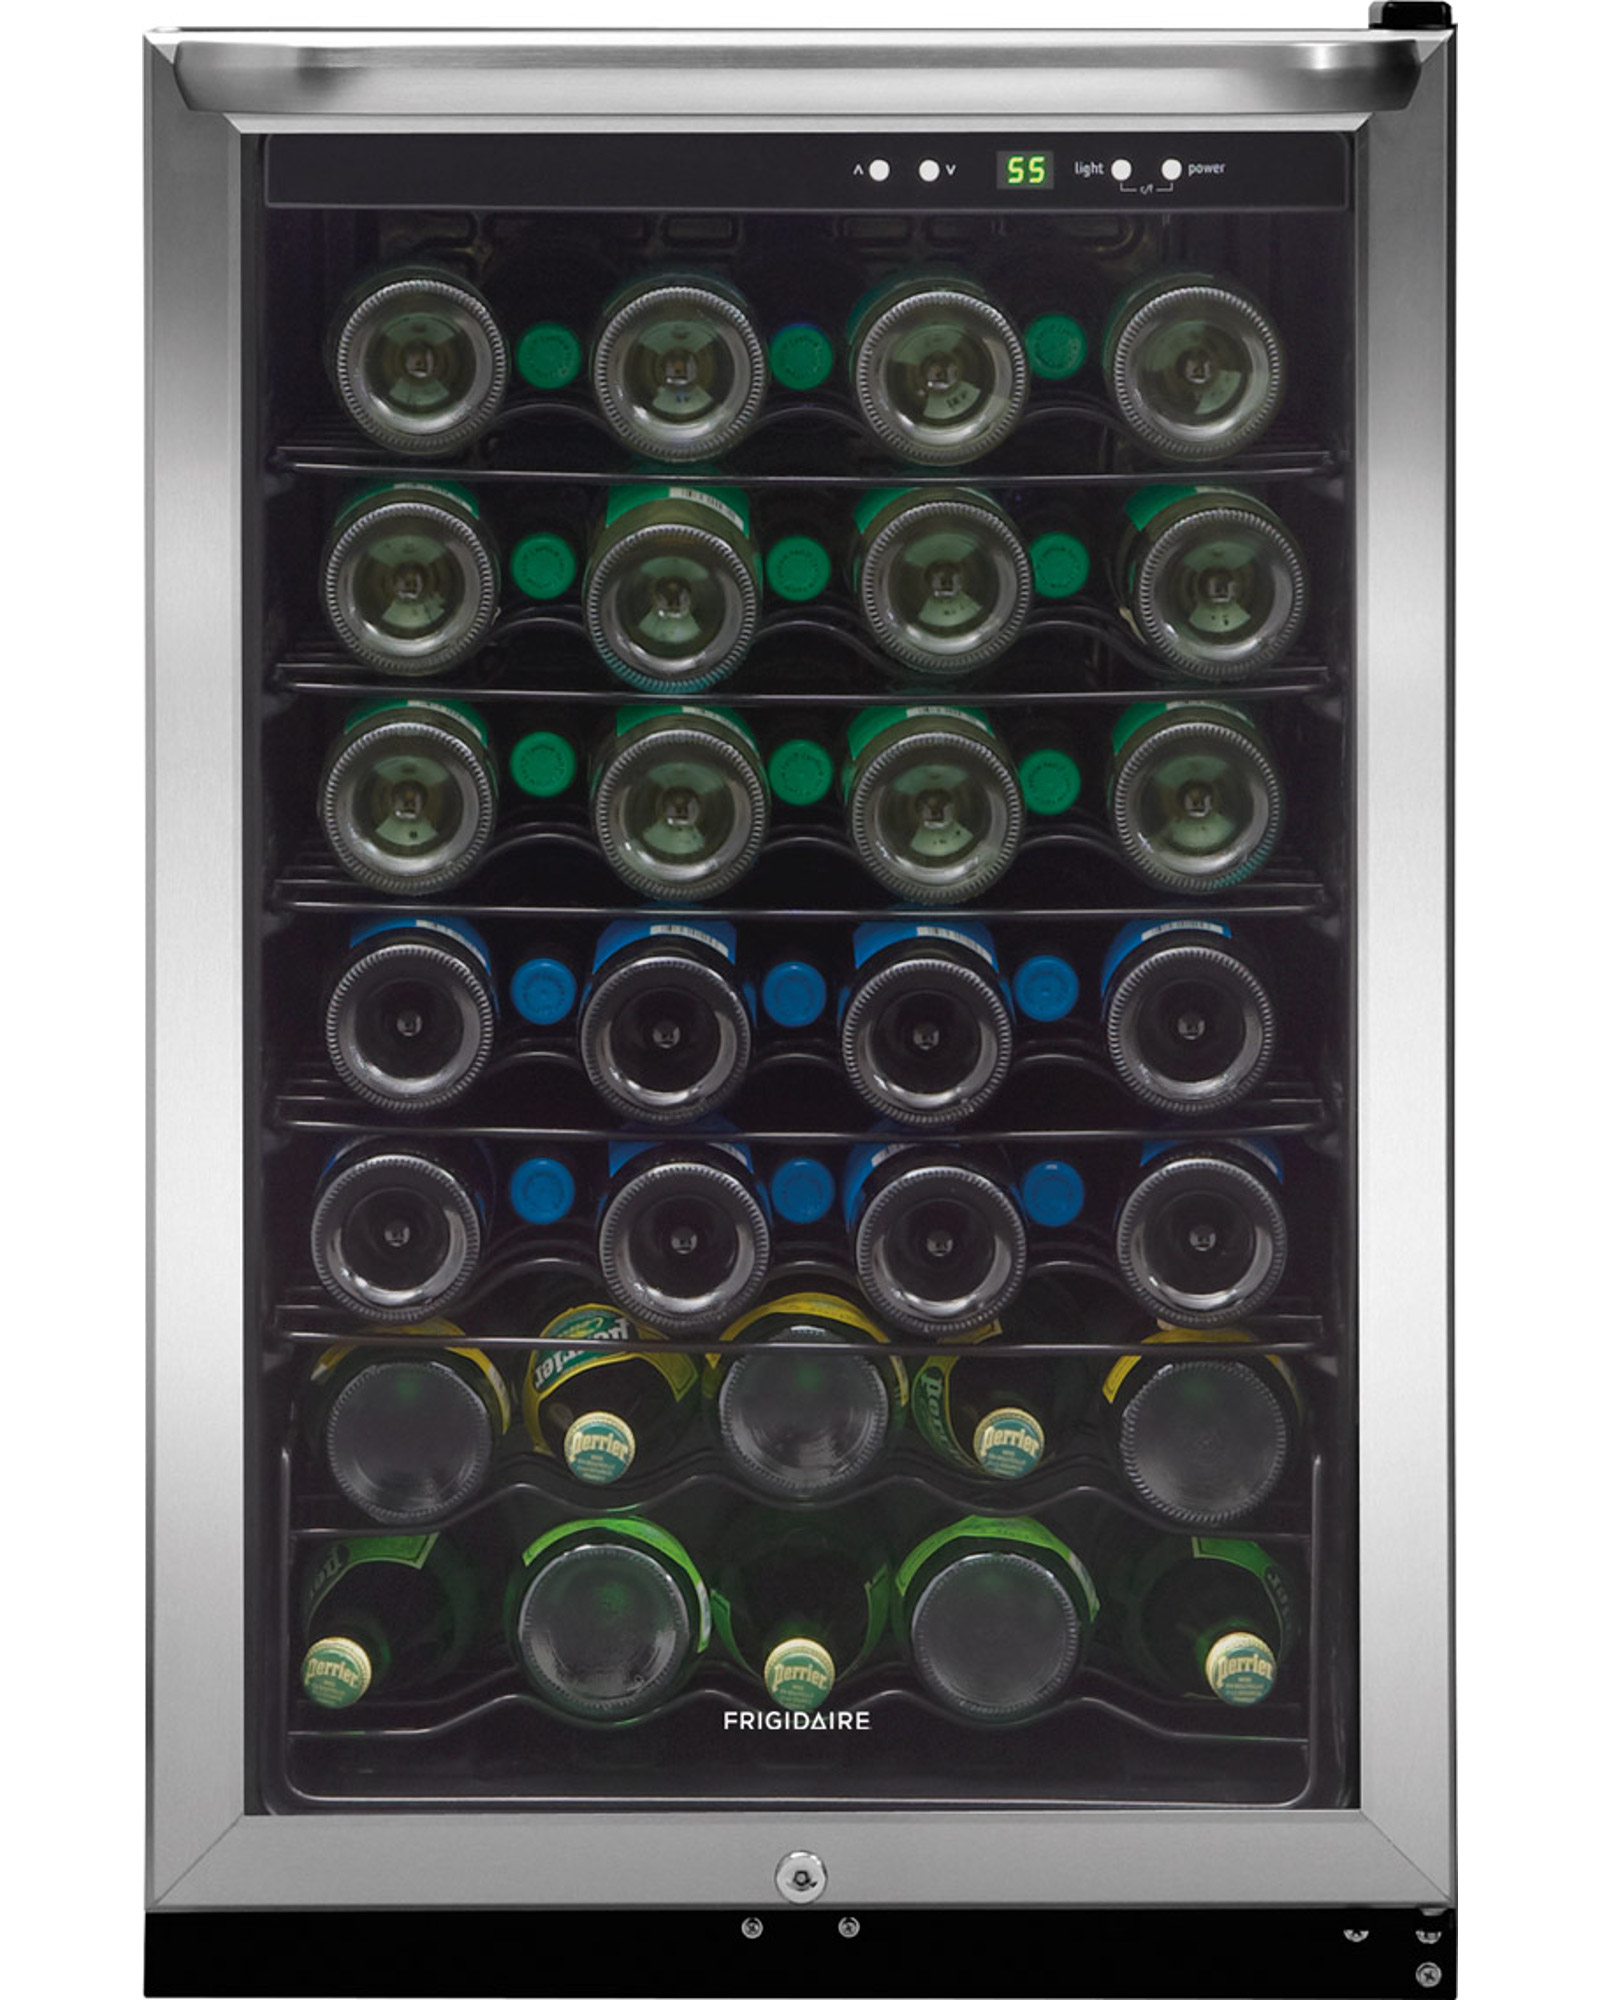 Frigidaire FFWC4222QS 4.6 cu. ft. Wine Cooler - Stainless Steel FFWC4222QS